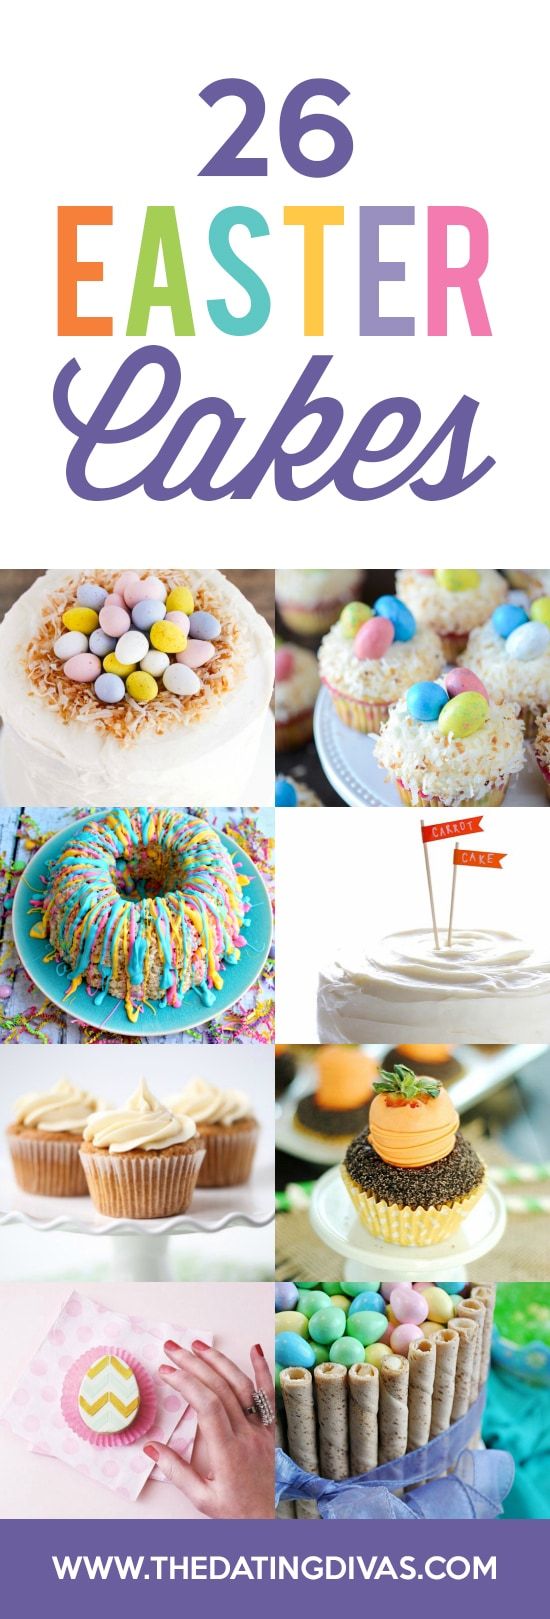 Cakes Easter Treats